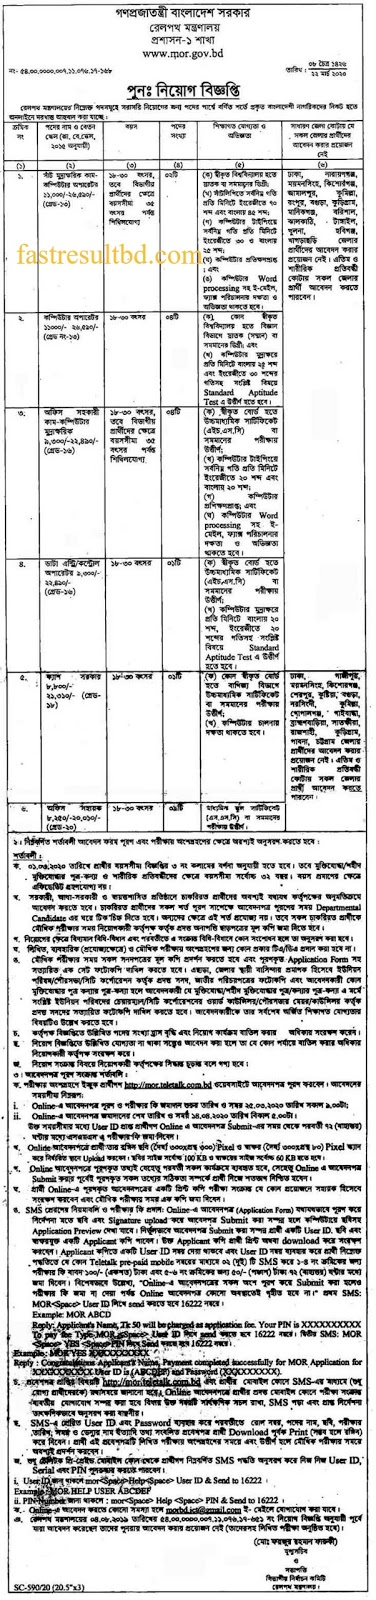 railway bangladesh job circular 2020 and application process